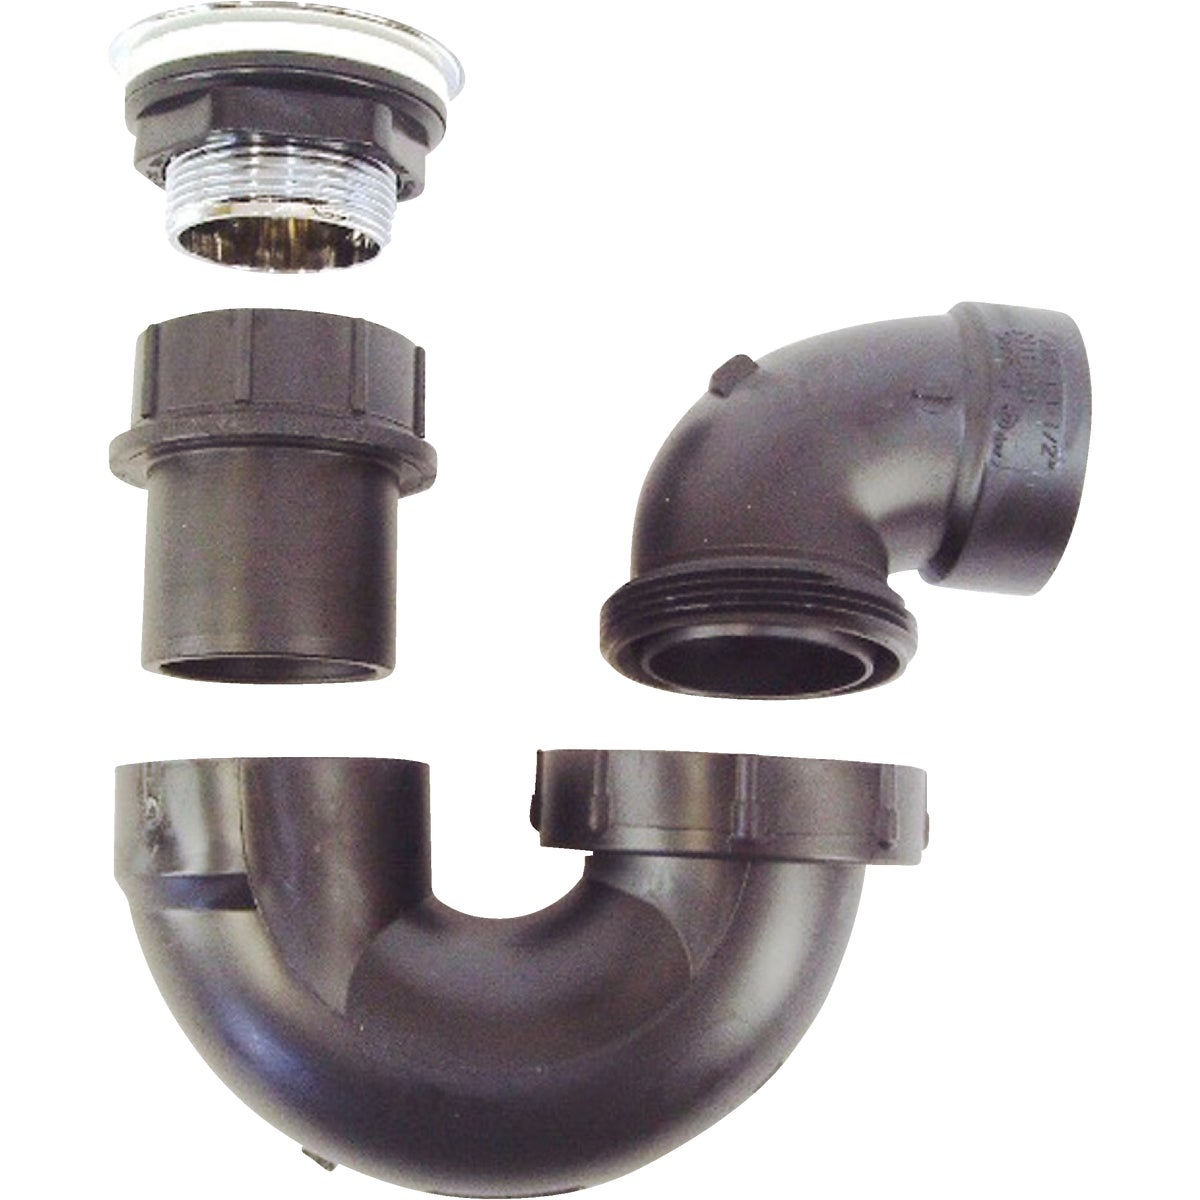 Bathtub P-Trap Drain Kit